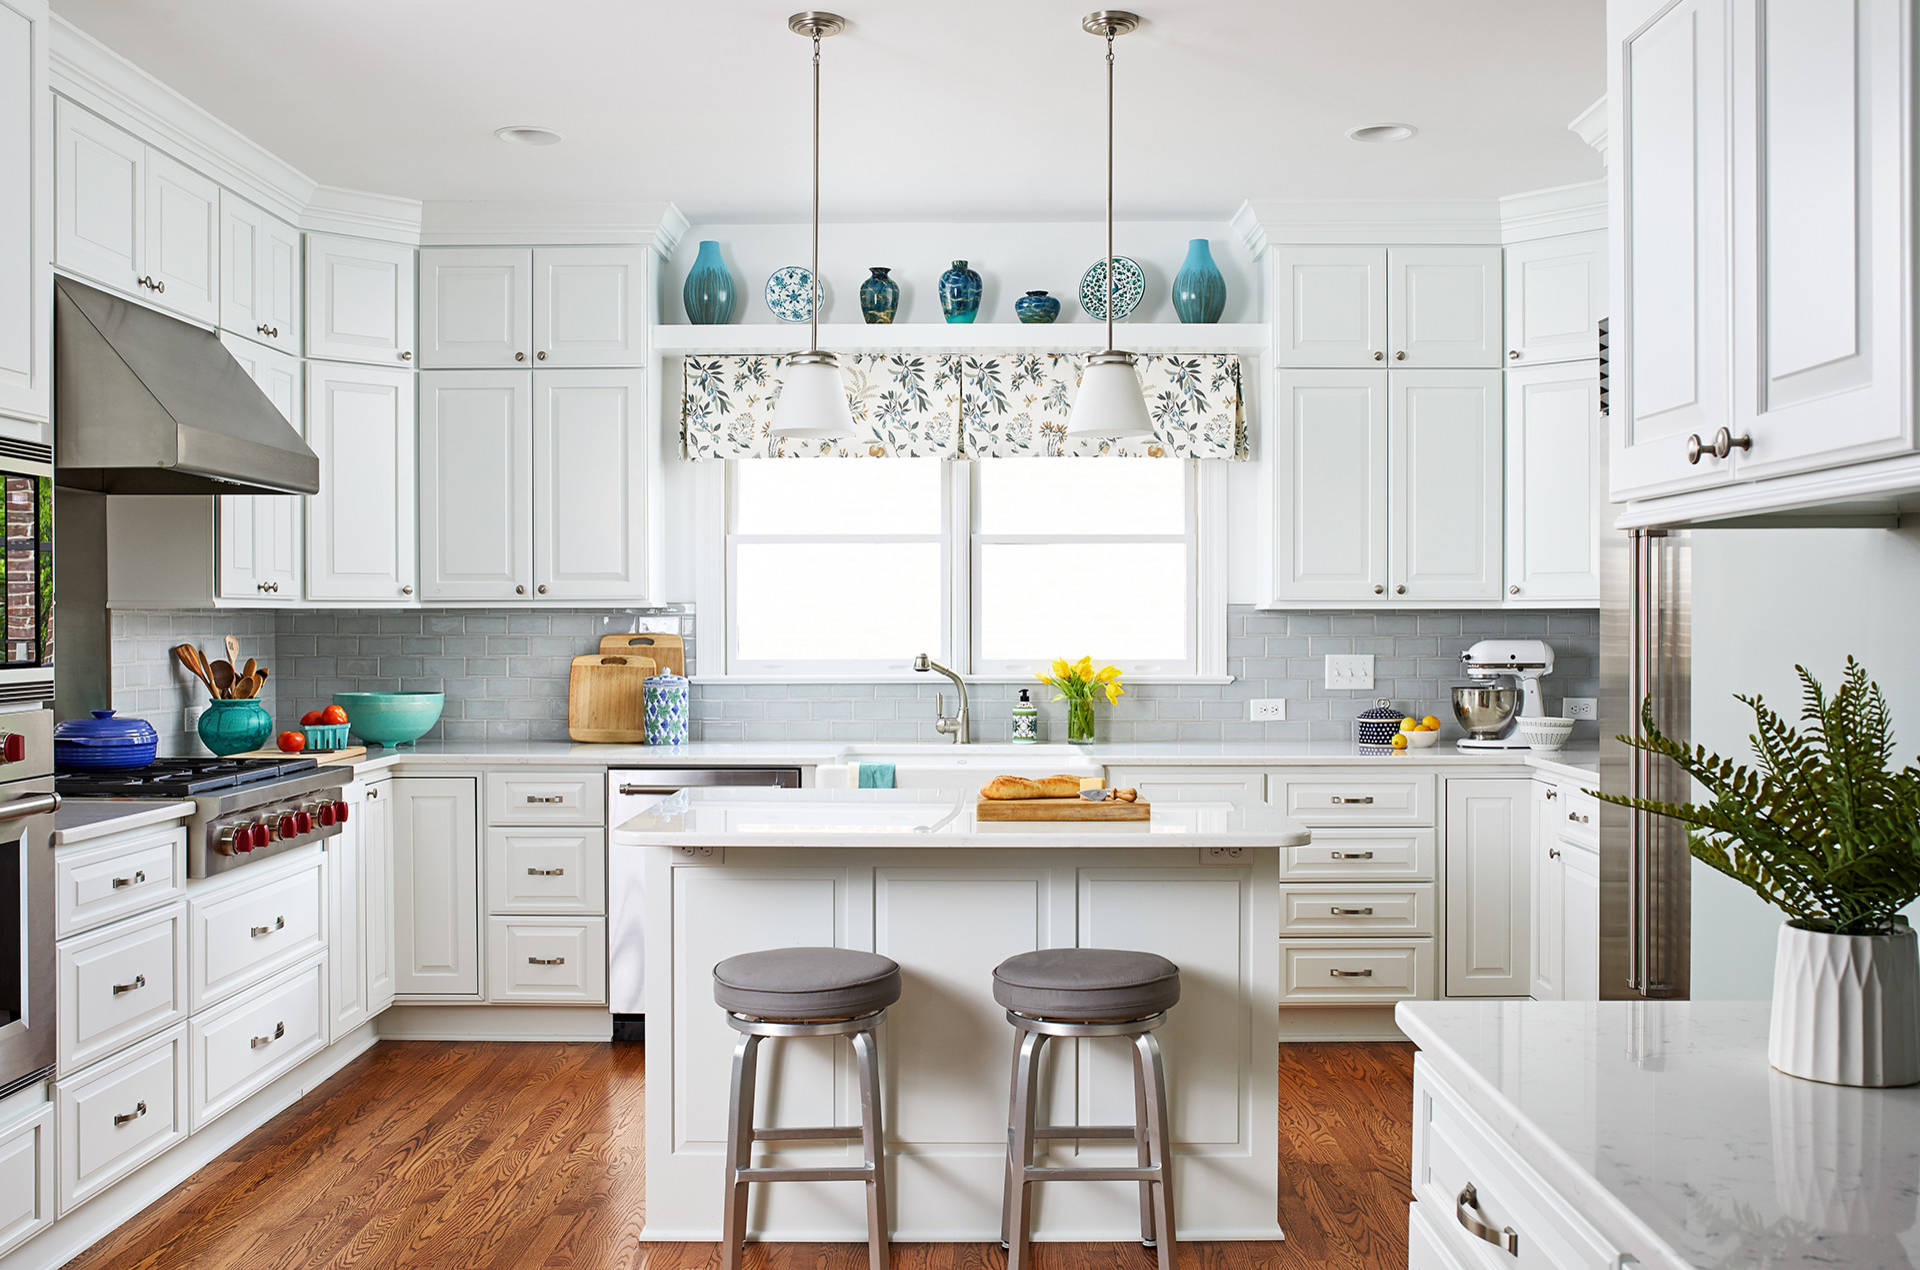 closed-kitchen-cabinets-hide-mess-of-kitchen